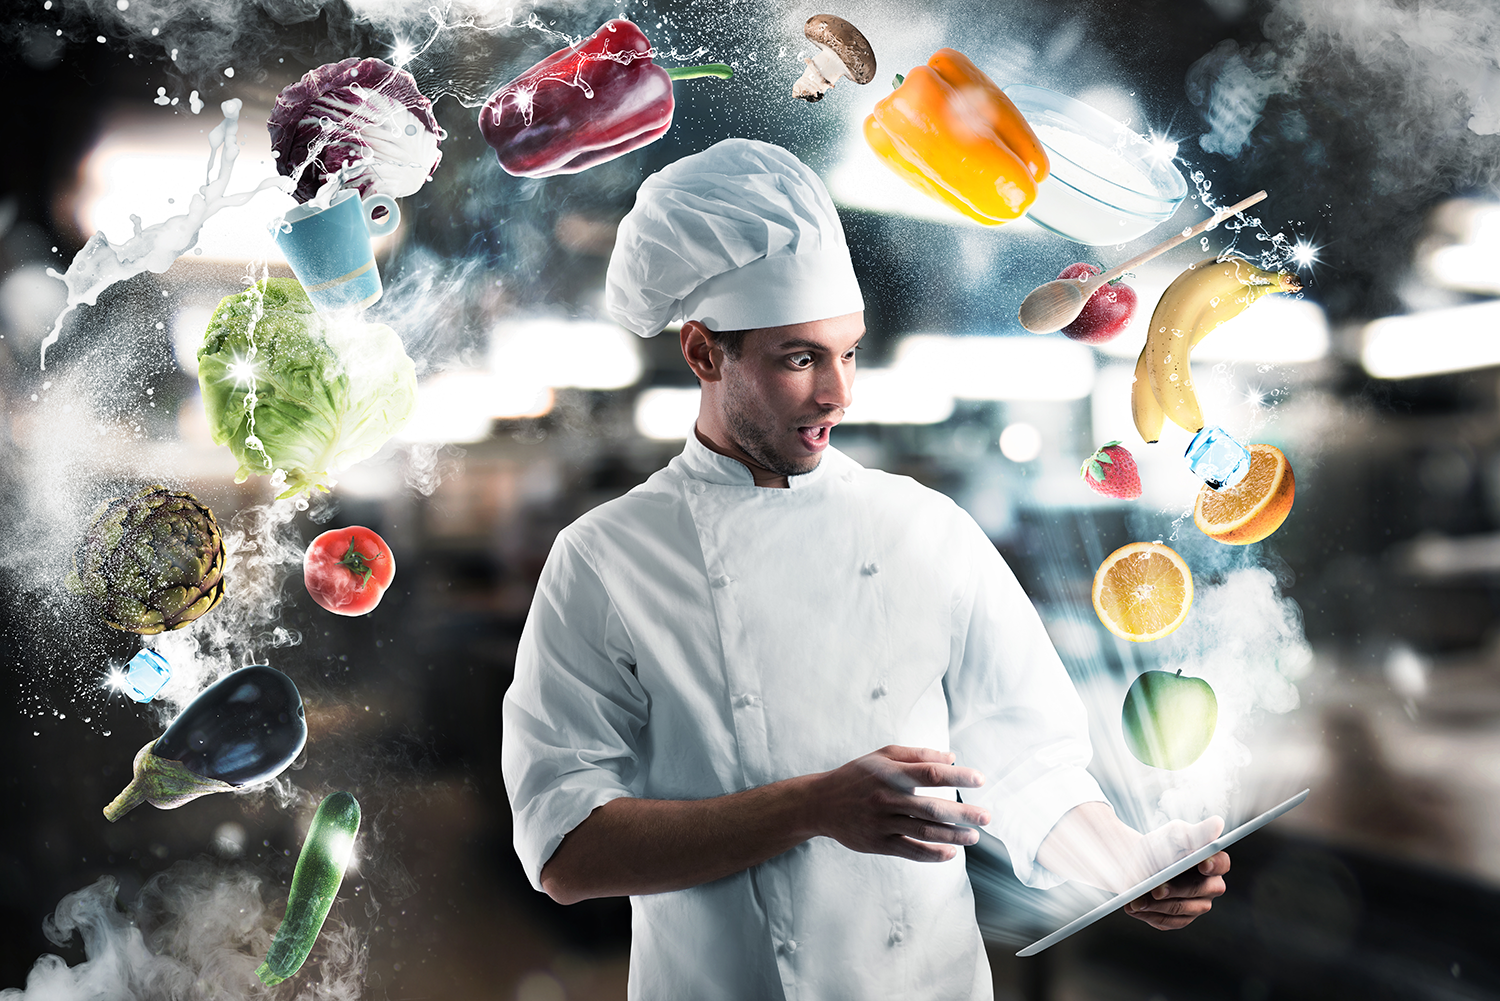 The modern restaurant needs to embrace the latest restaurant technology trends